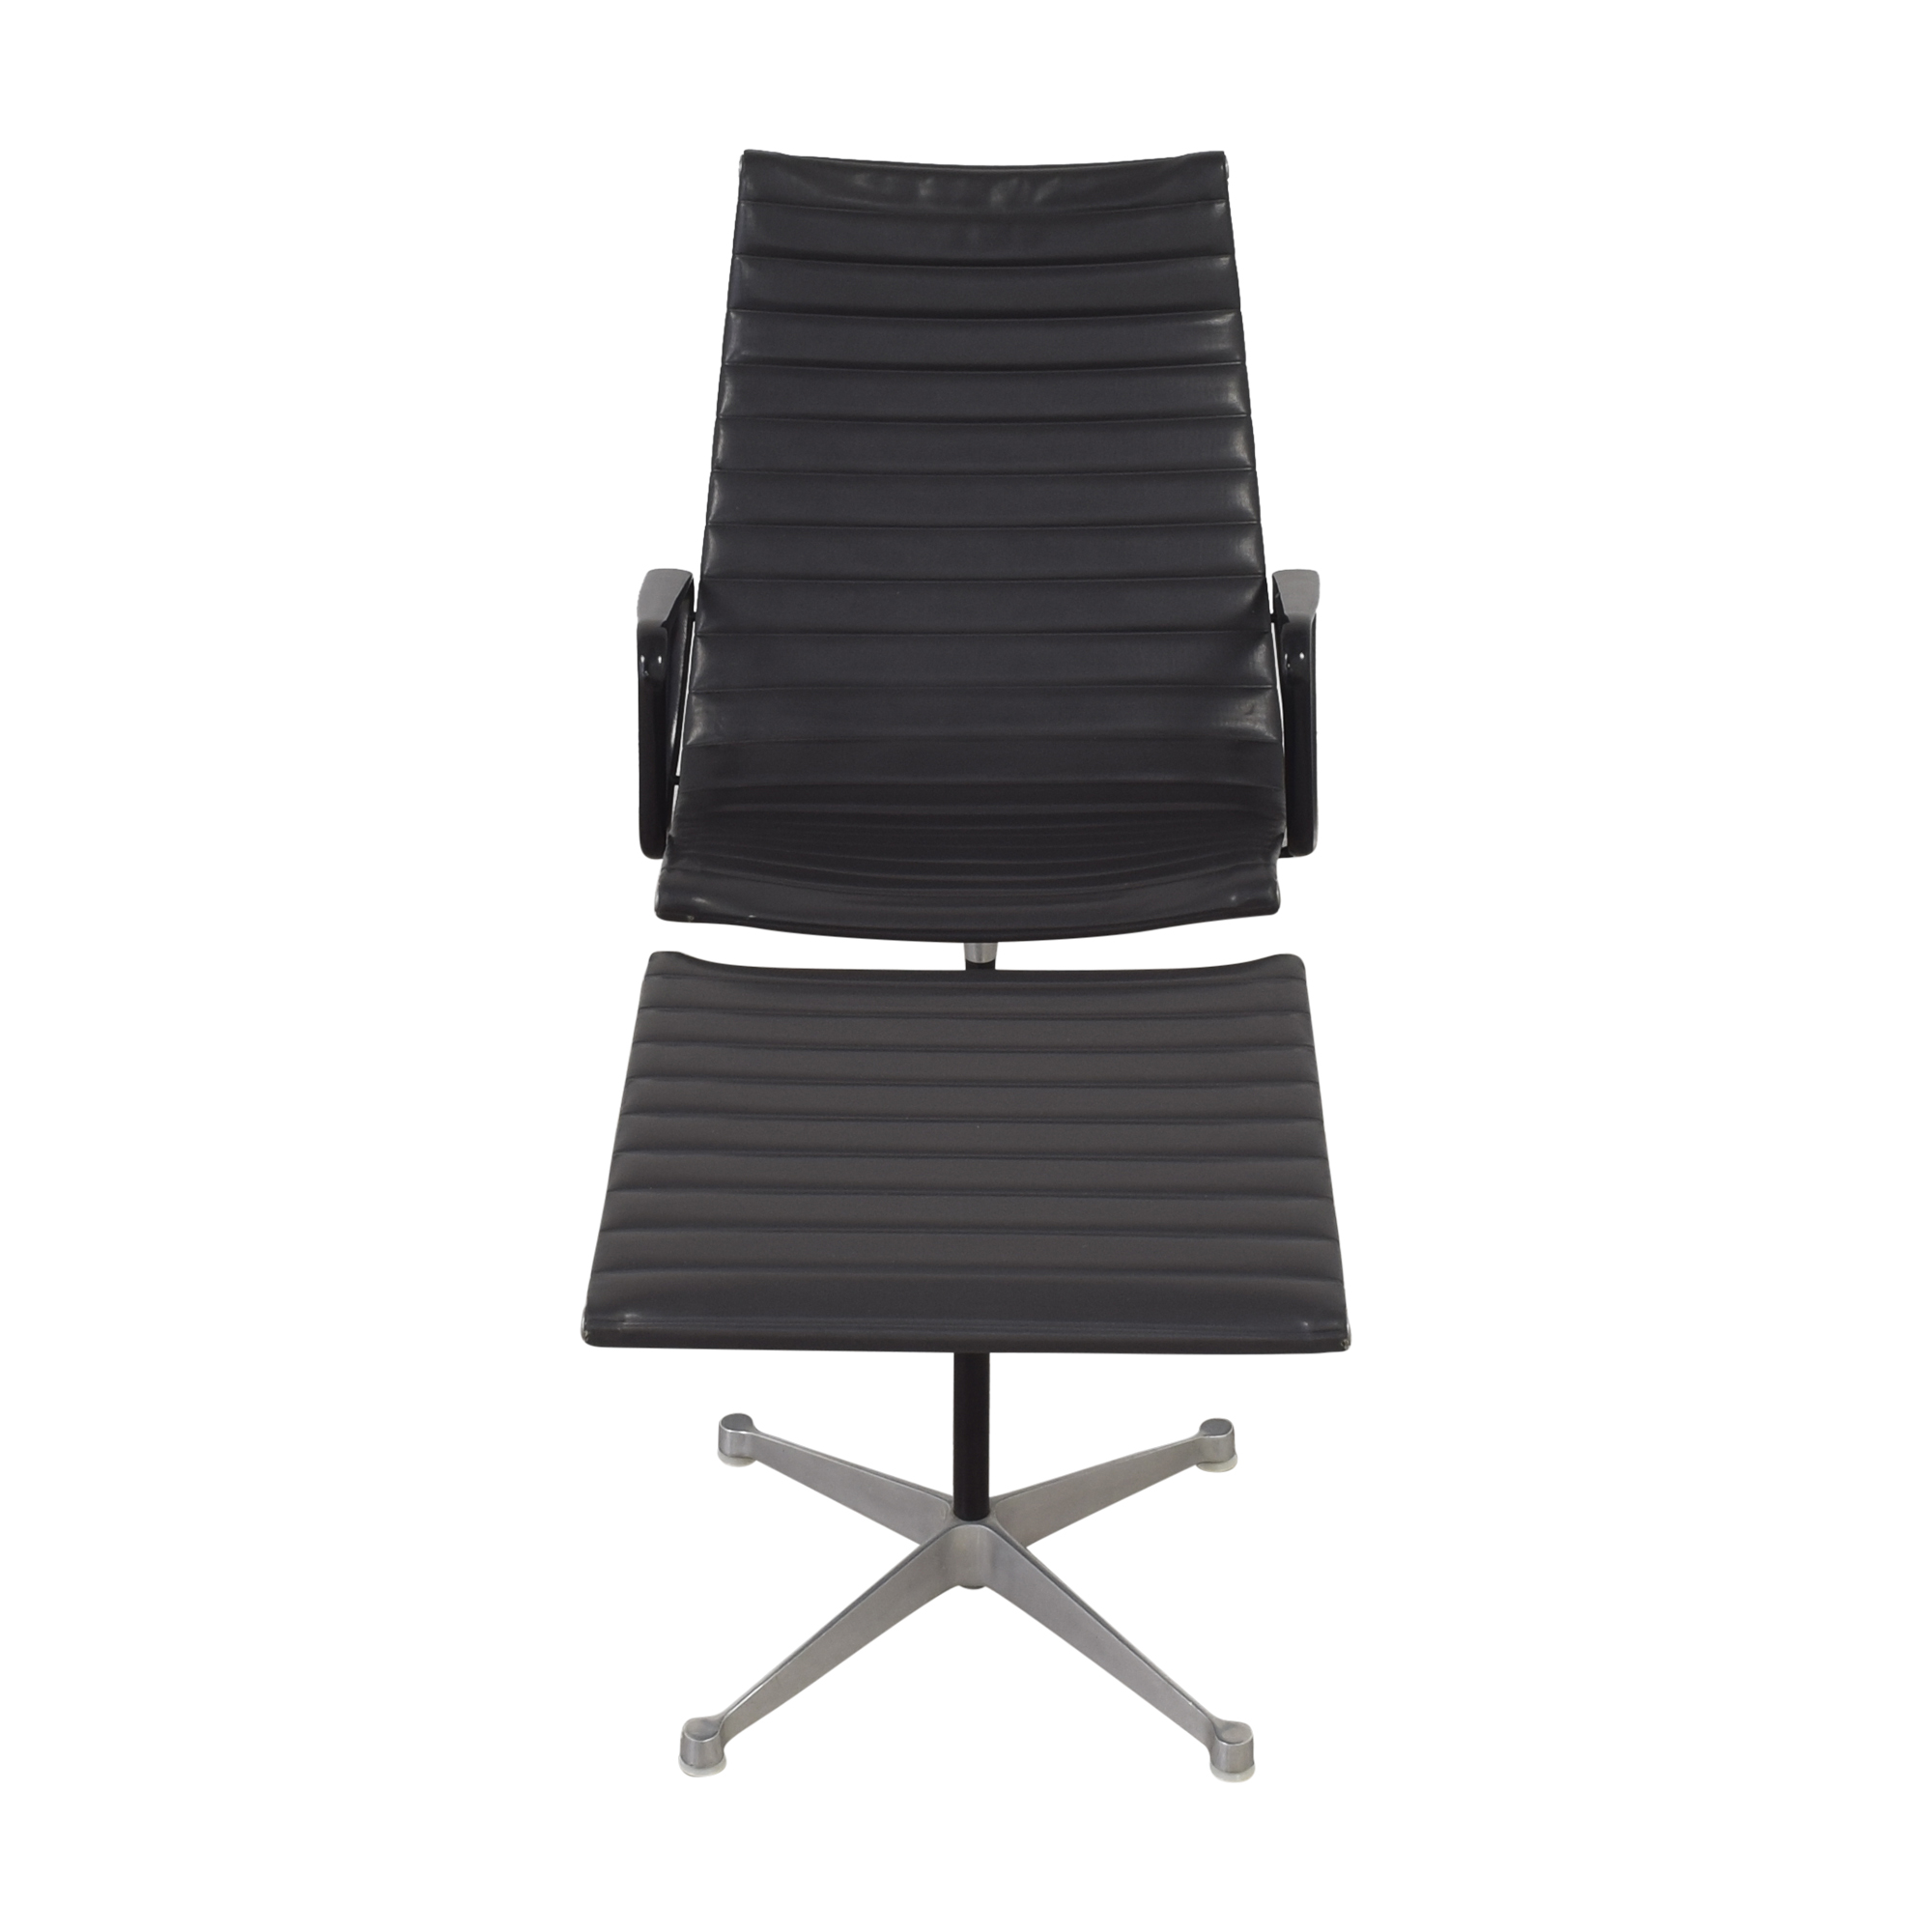 Herman Miller Herman Miller Eames Aluminum Group Lounge with Ottoman